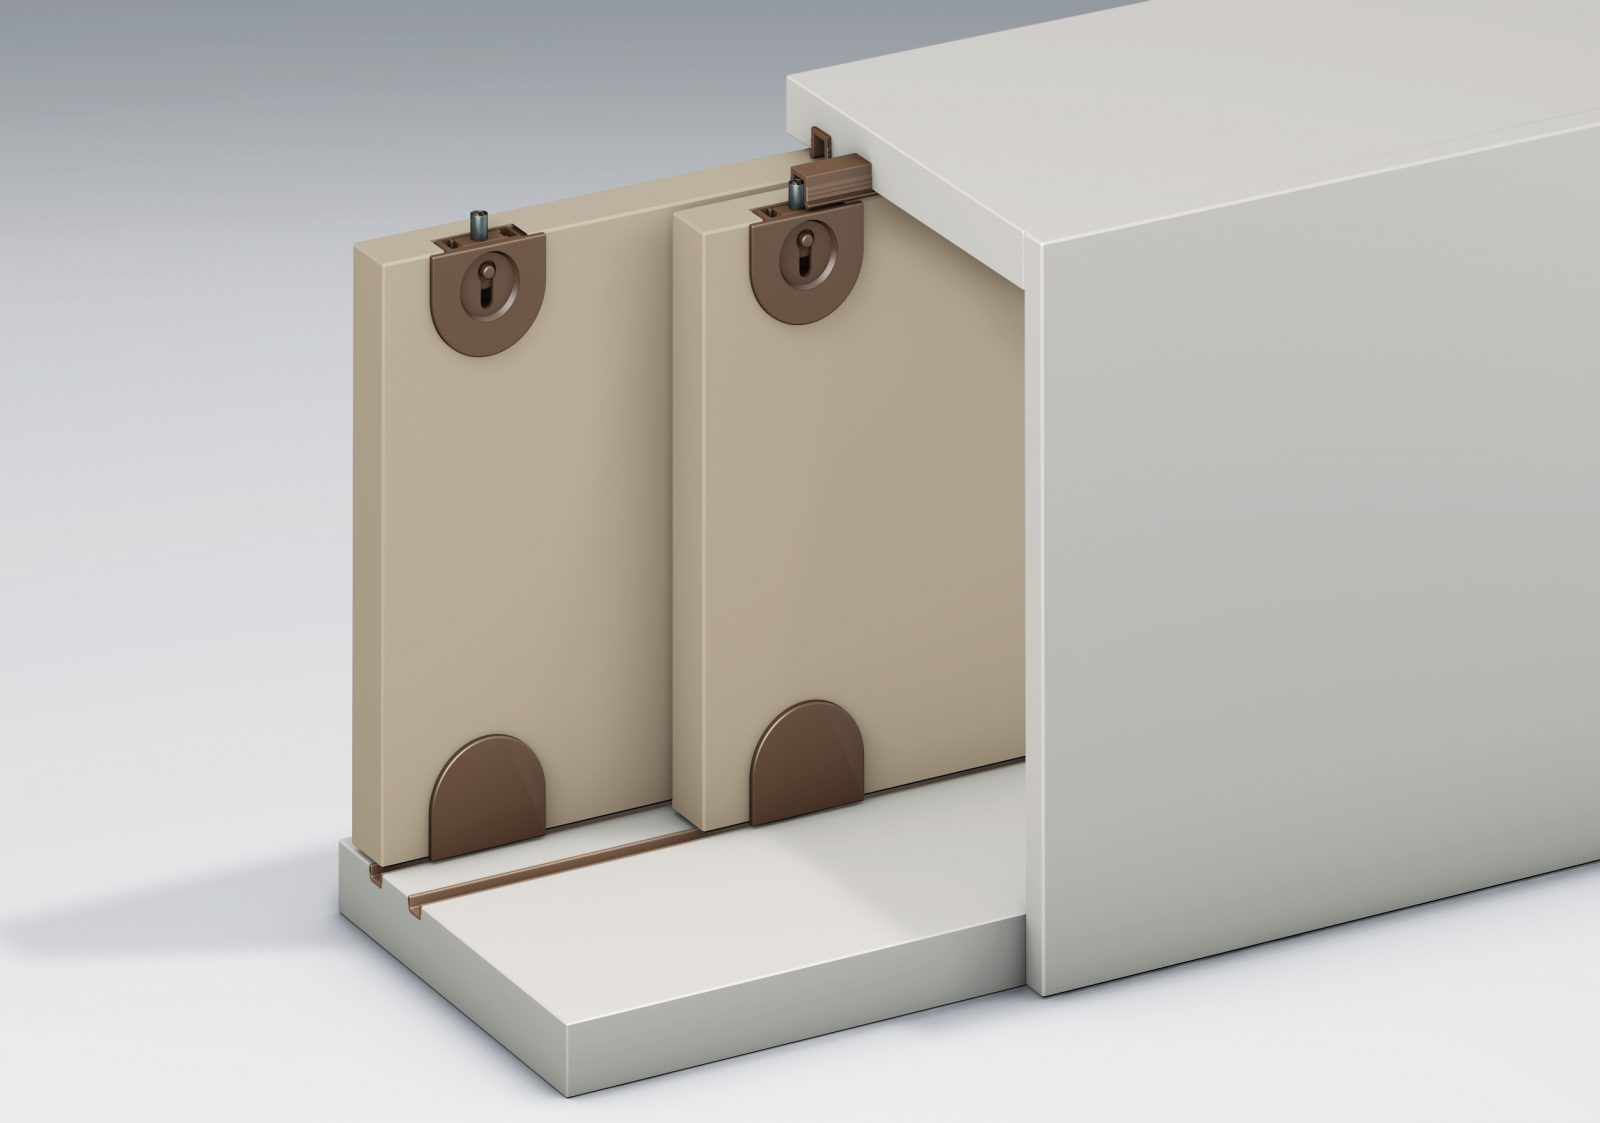 Buy High Quality and Durable Cabinet Sliding Door Track Kit